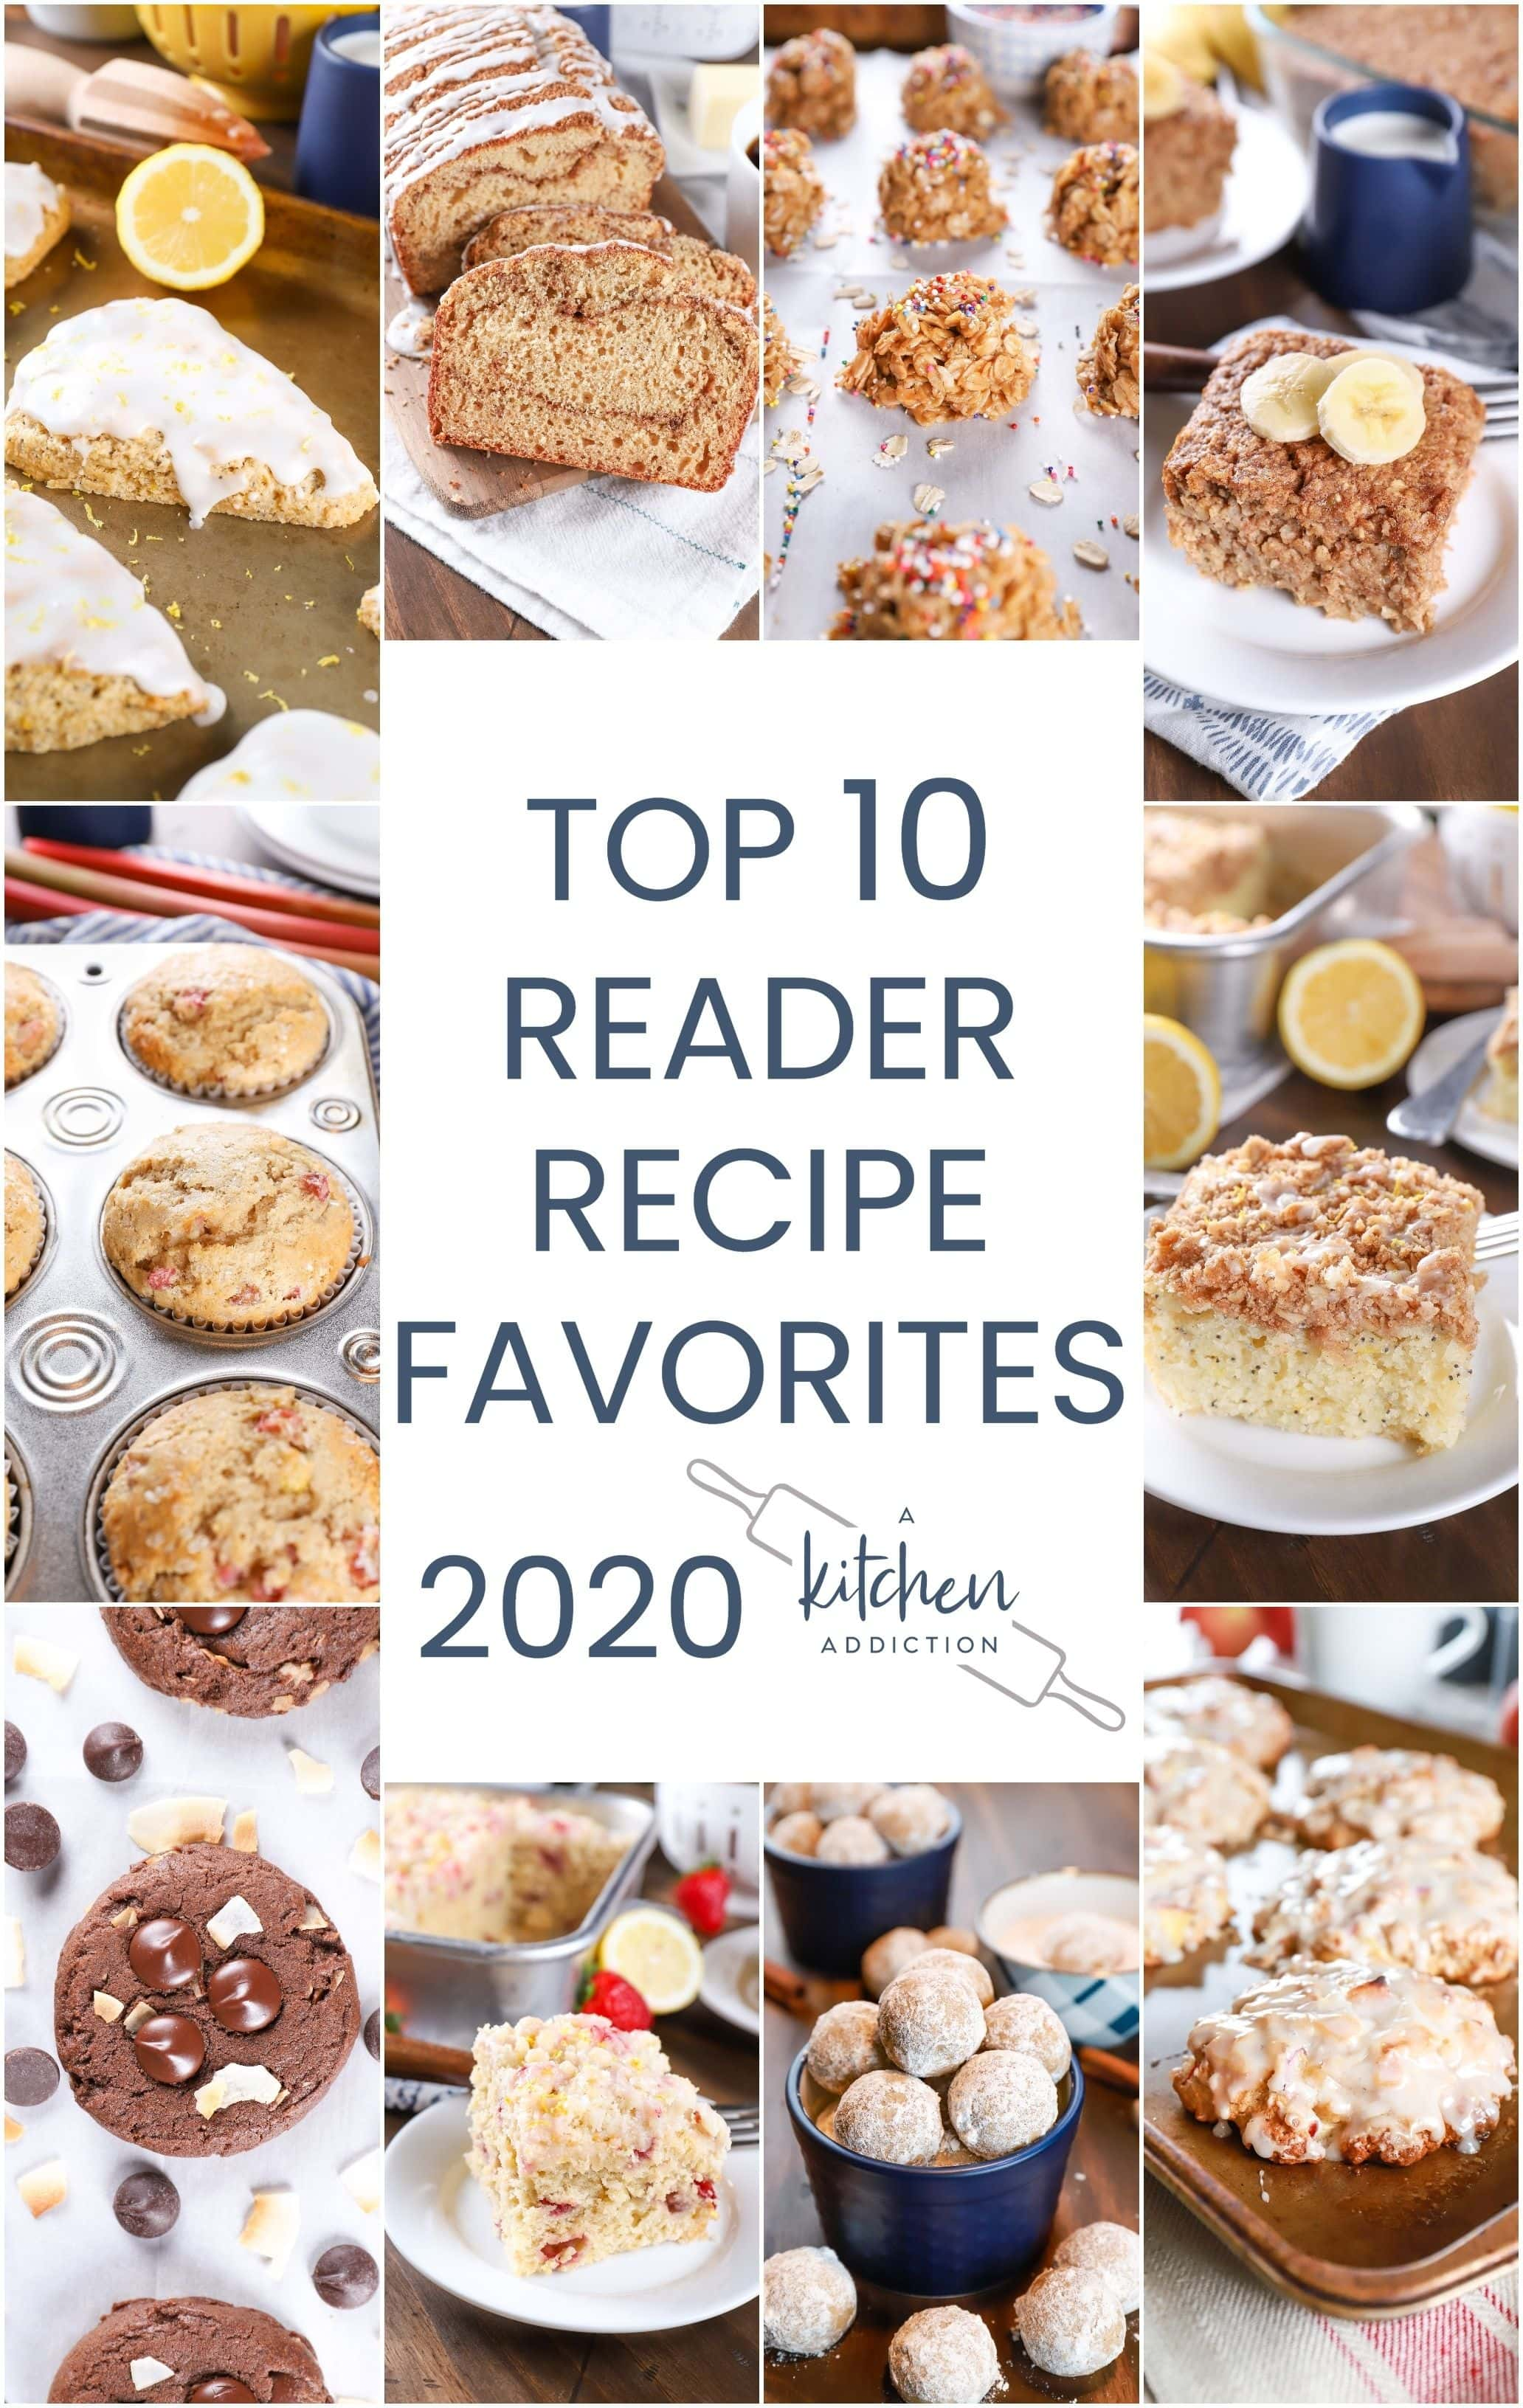 Collage of 10 recipe images